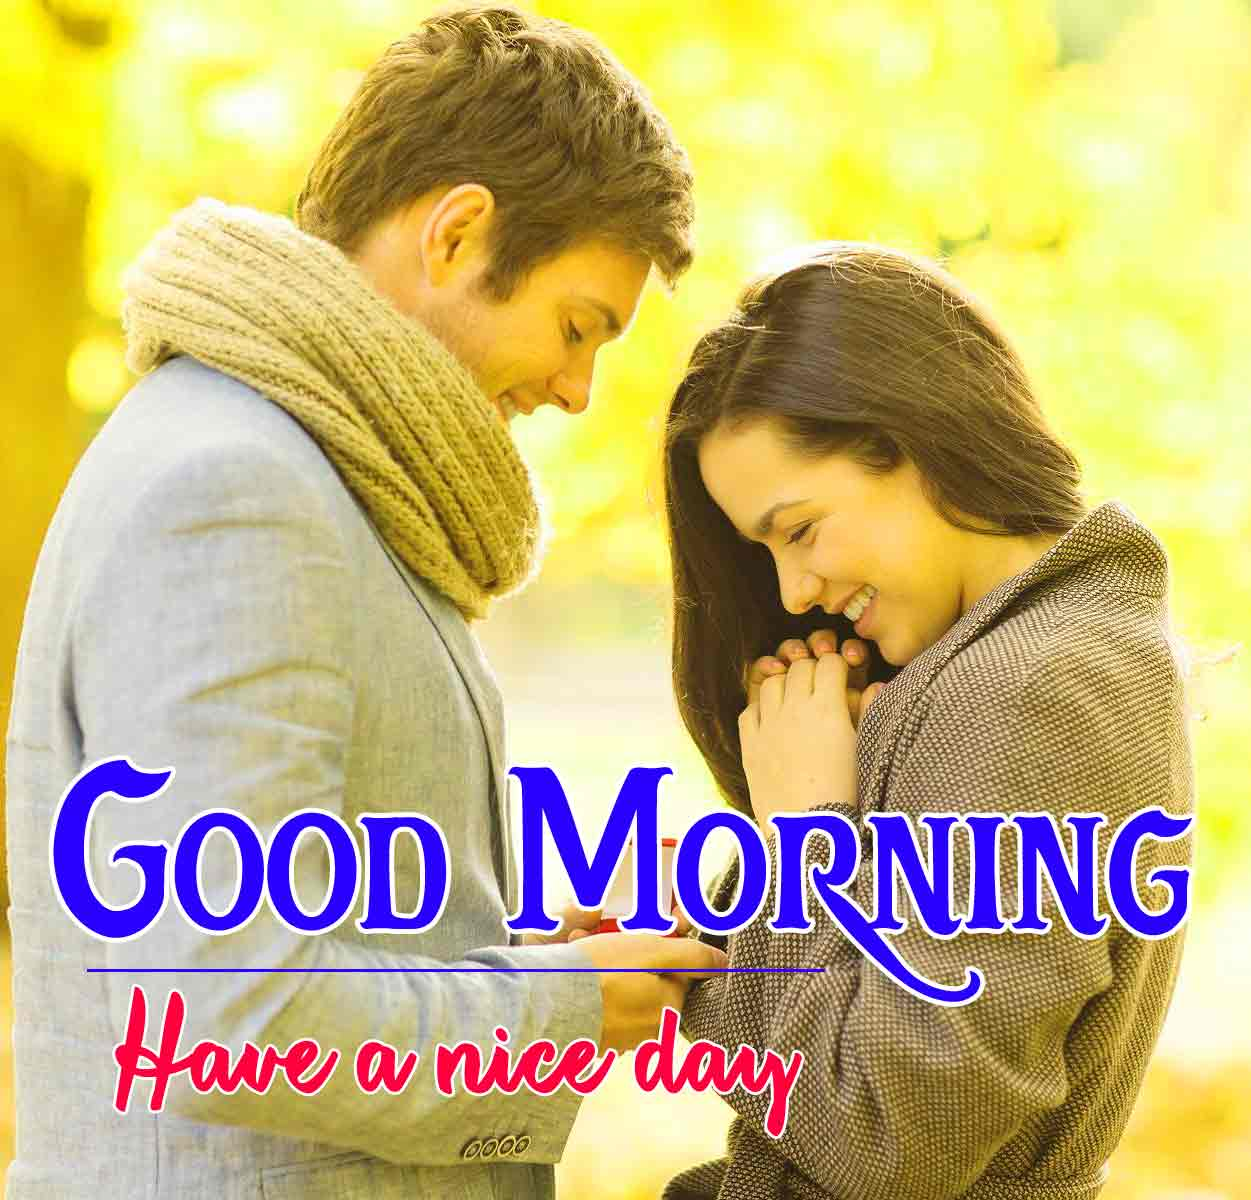 Good Morning 4k HD Images HD Pics Photo for Facebook